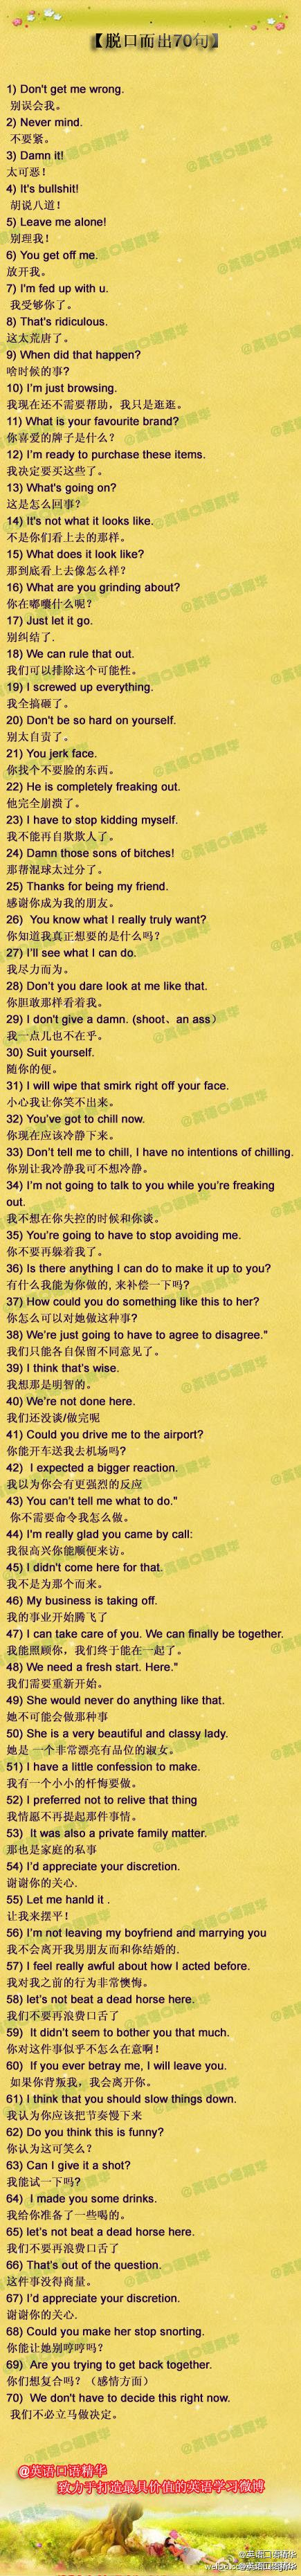 Translate these phrases for me to chinese?